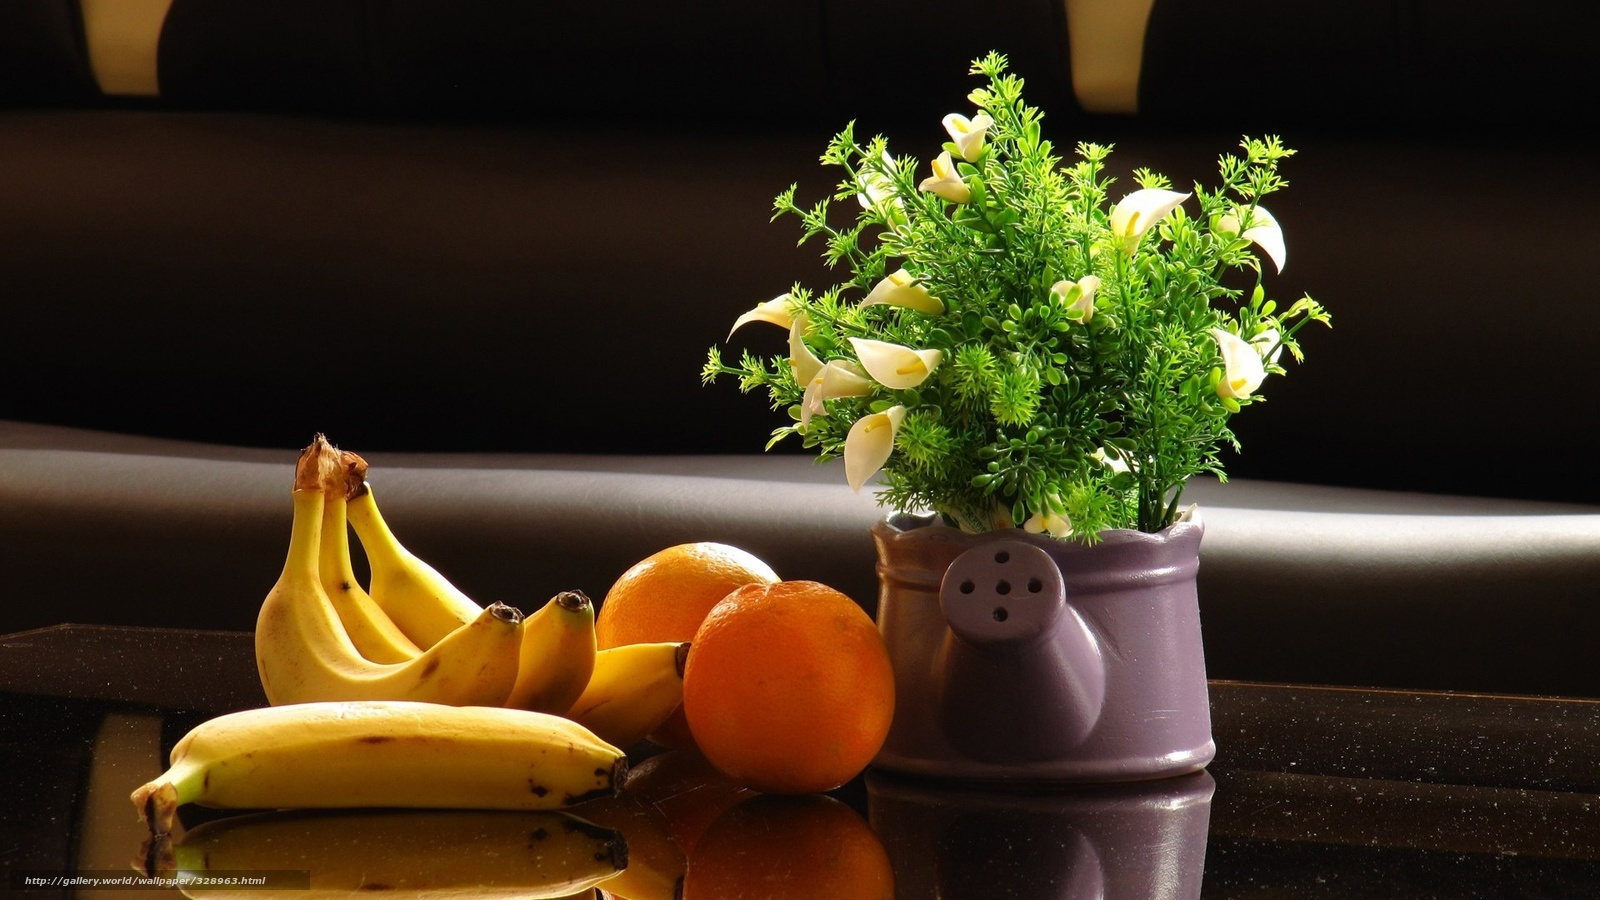 Desktop wallpaper fruits and flowers -  Download Wallpaper Still Life Fruit Picture Free Desktop